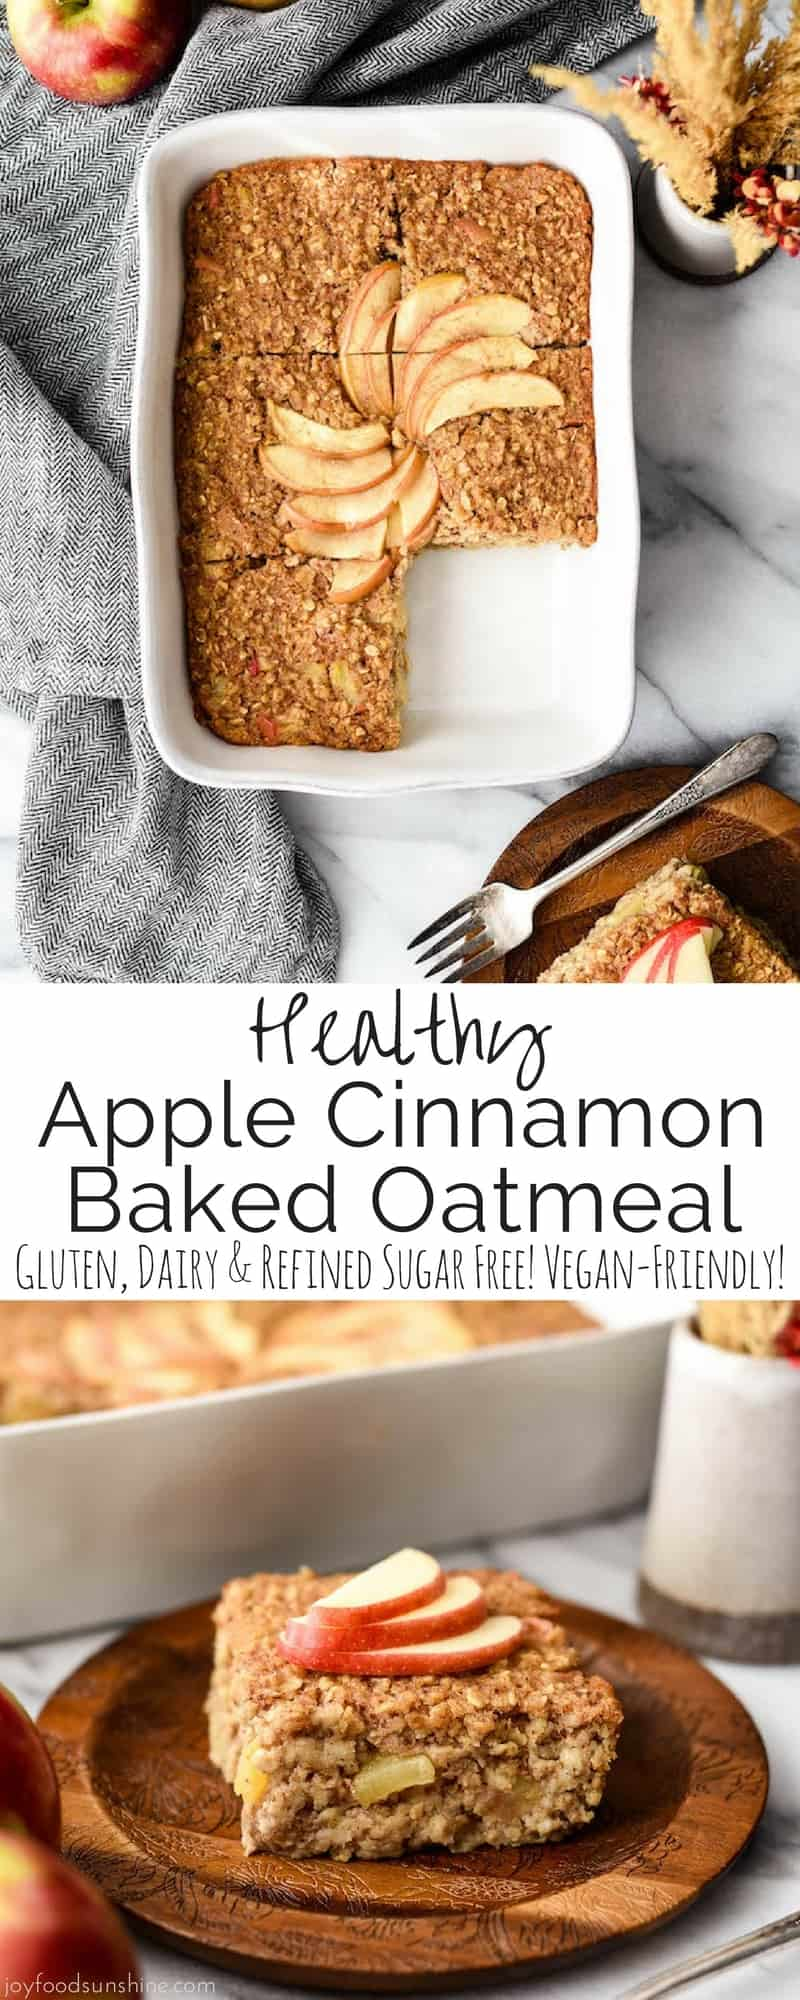 This Apple Cinnamon Baked Oatmeal is a healthy & hearty breakfast recipe that your entire family will love. It's gluten-free and dairy-free with no refined sugar. Plus it's vegan-friendly! #bakedoatmeal #healthy #glutenfree #vegan #applecinnamon